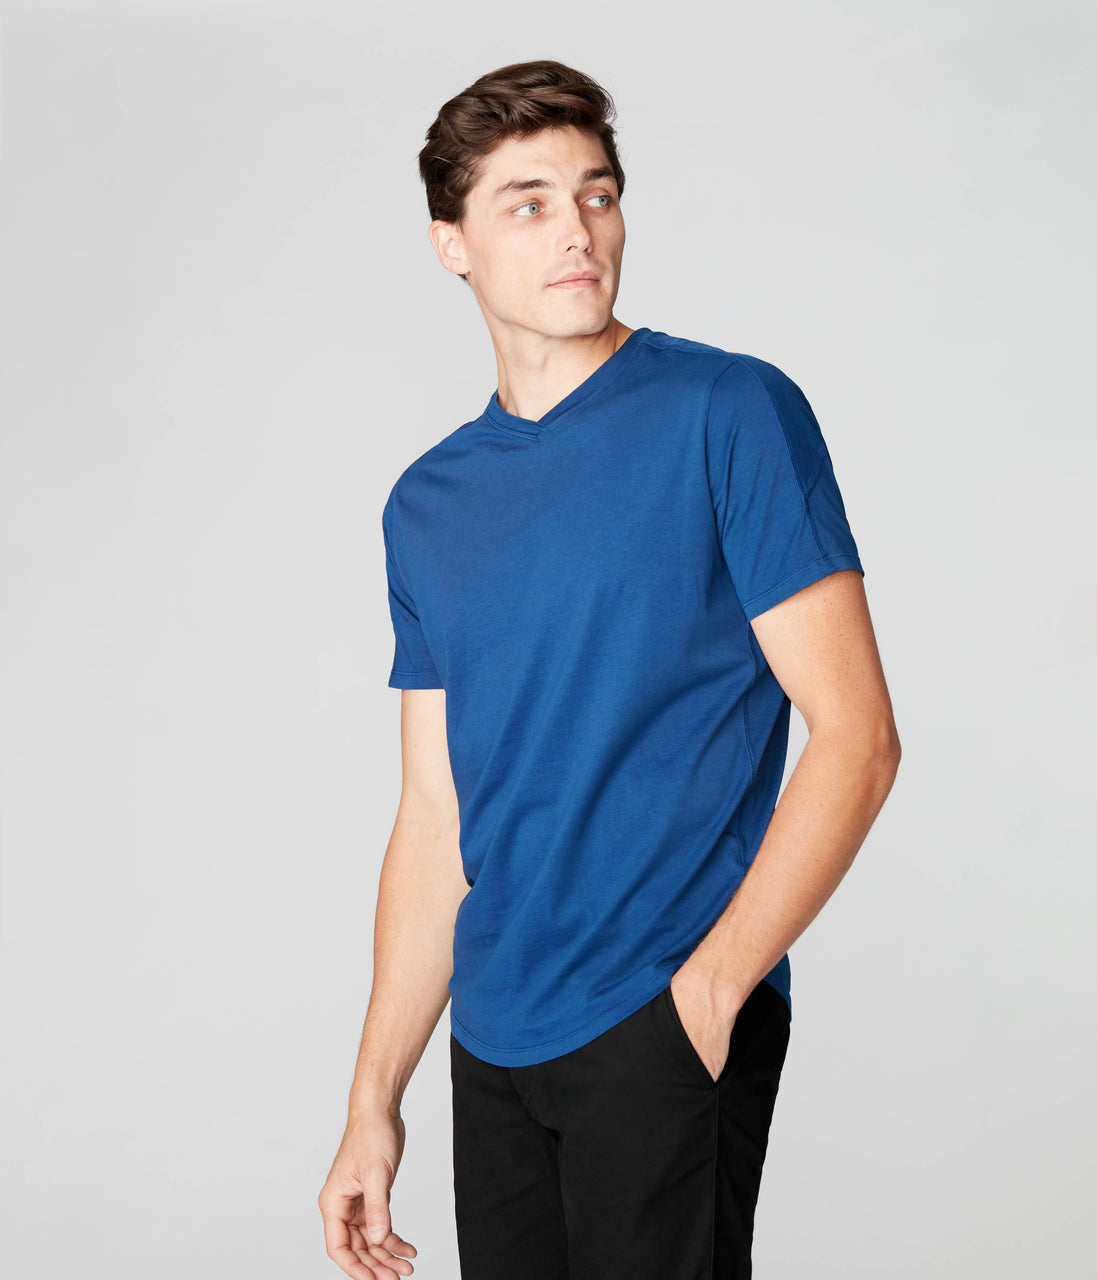 Hi Vee Tee in Premium Jersey - Blue - Good Man Brand - Hi Vee Tee in Premium Jersey - Blue